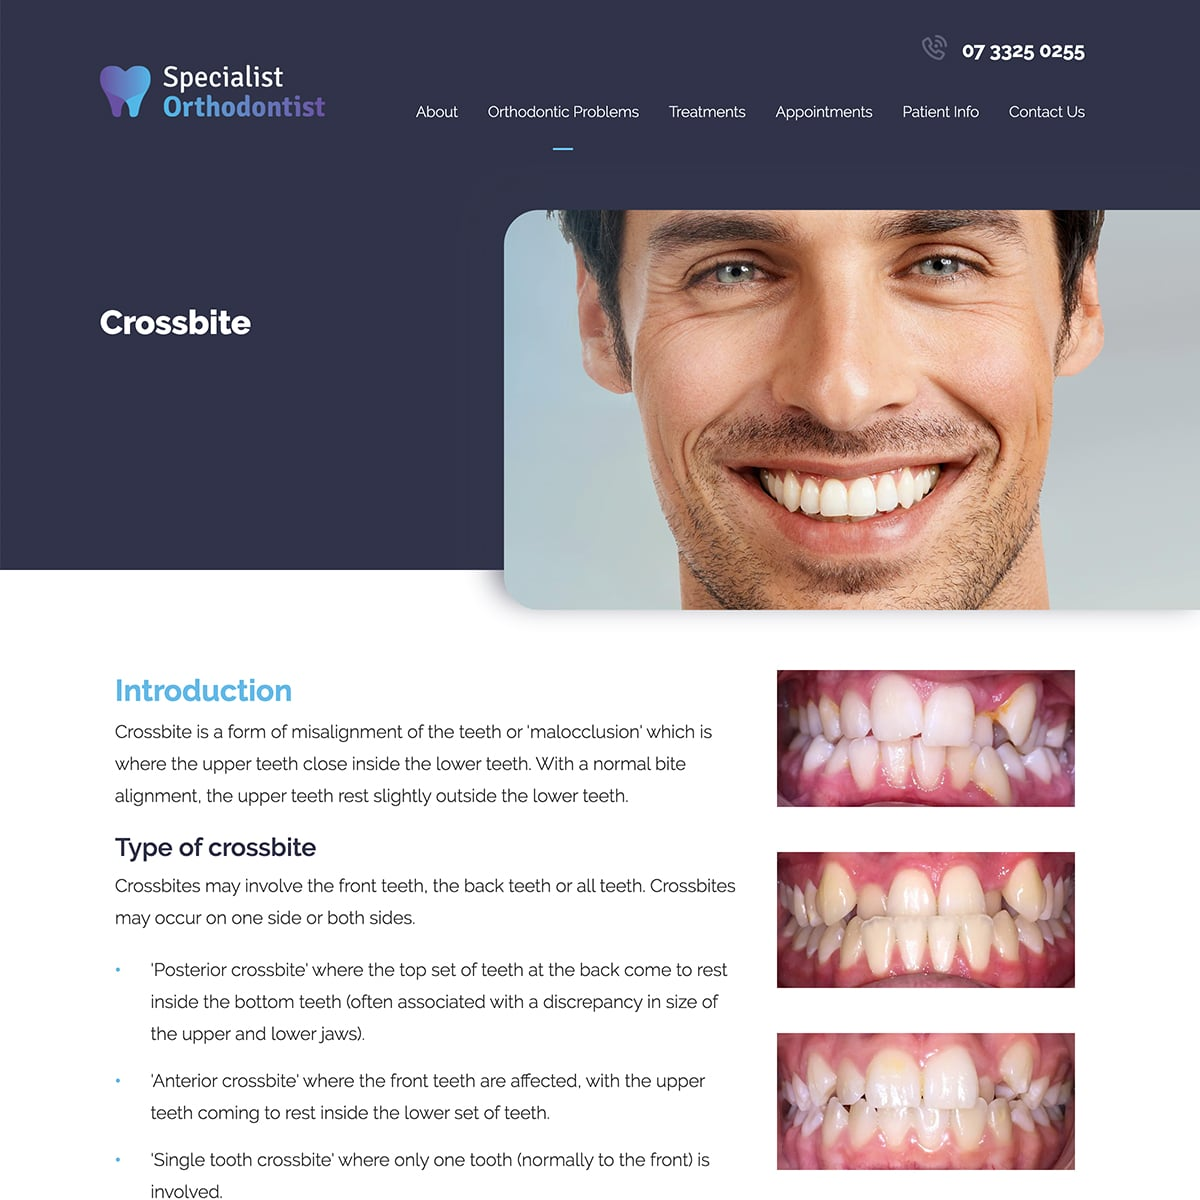 Specialist Orthodontist - Orthodontic Problems